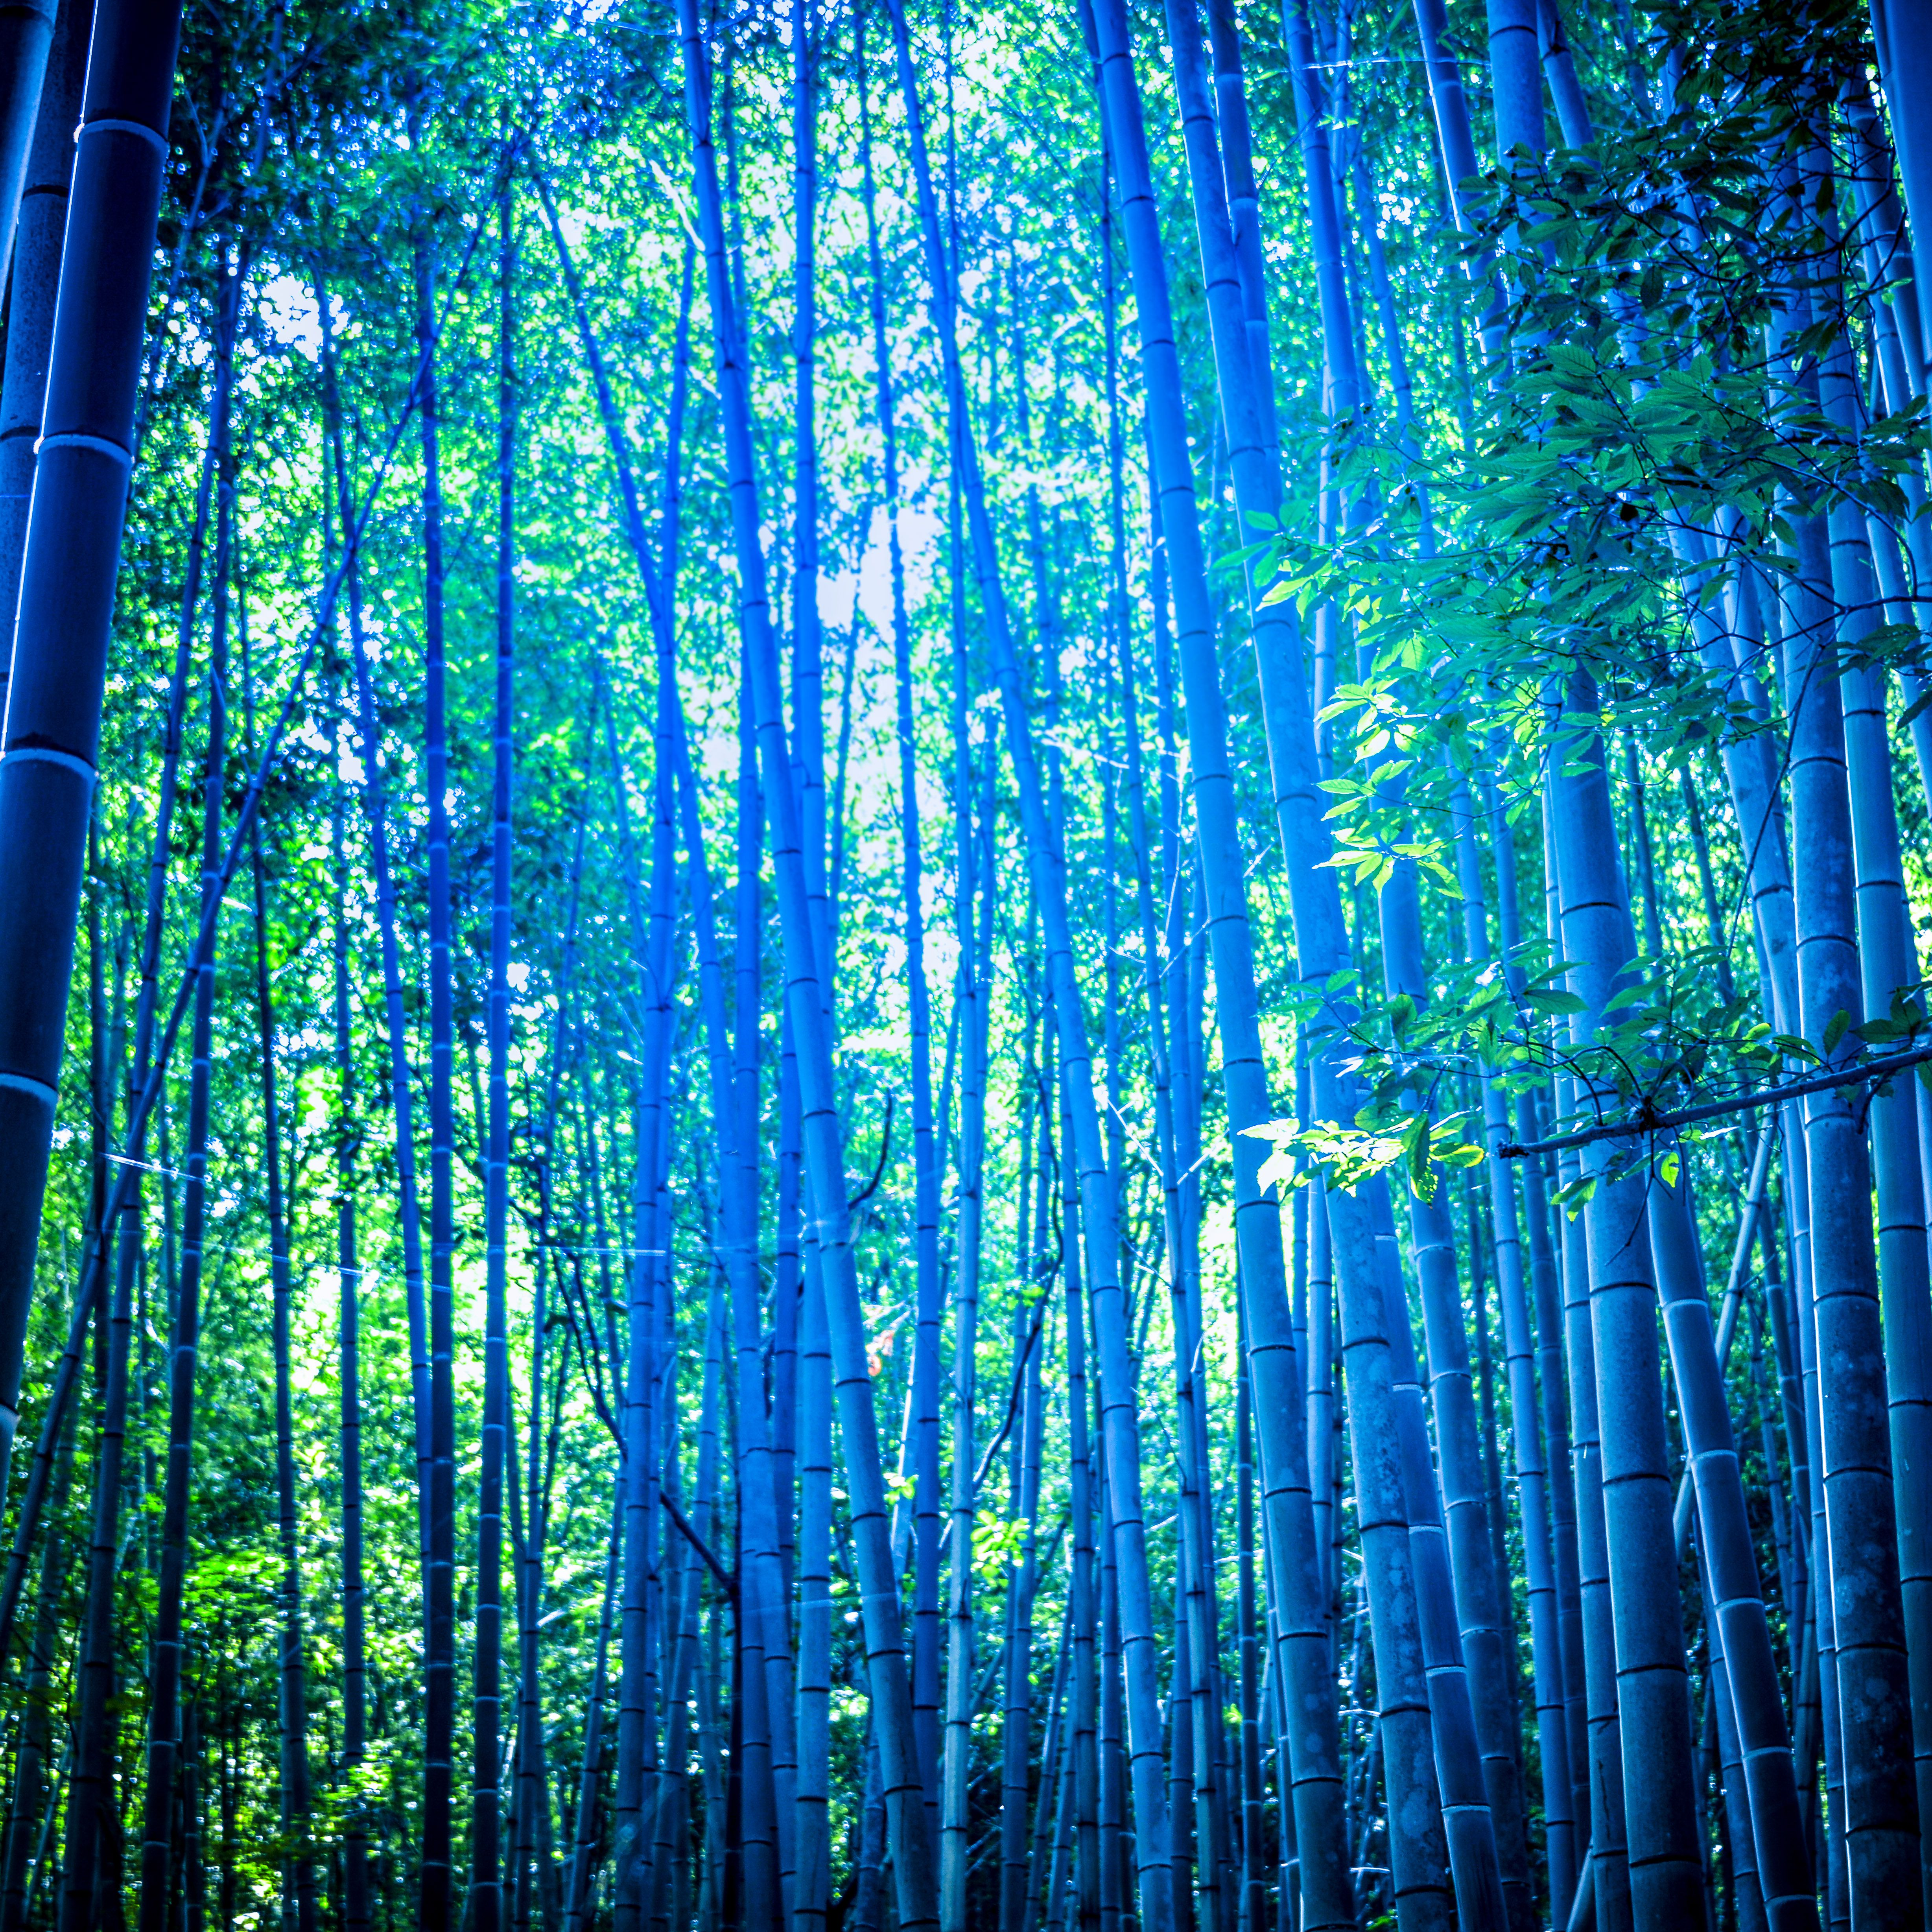 What Are The Best Growing Conditions For Bamboo